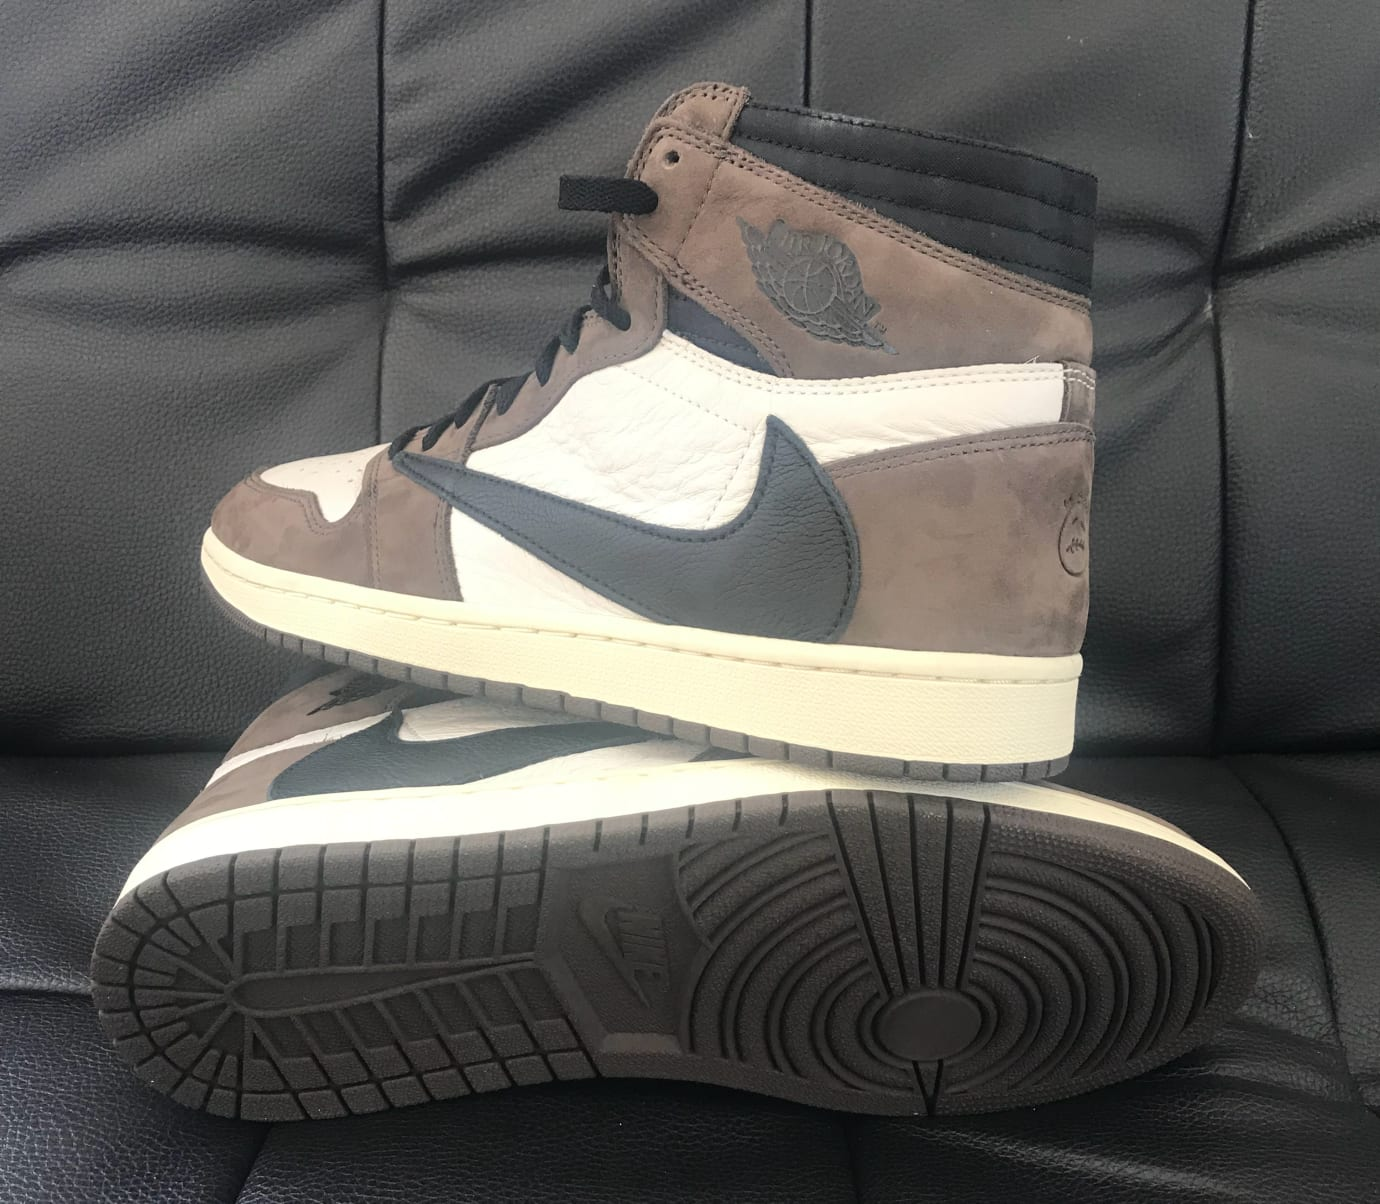 2fe590916d3 Image via Weibo.cn Travis Scott x Air Jordan 1 High OG TS SP CD4487-100  (Lateral and